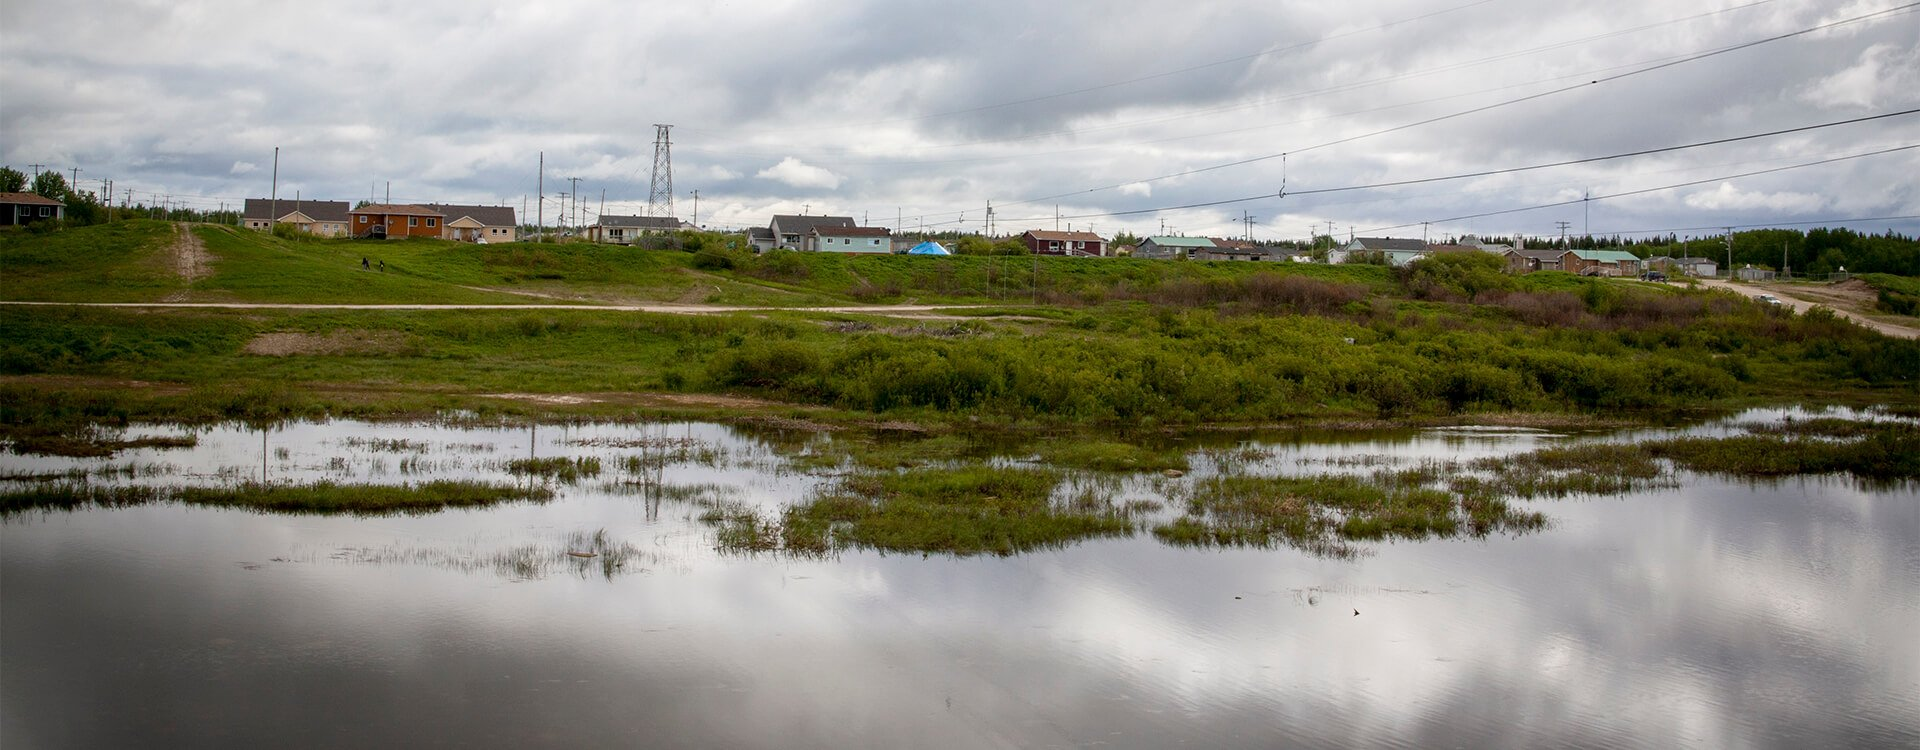 bnr-water insecurity for Canadas Indigenous communities